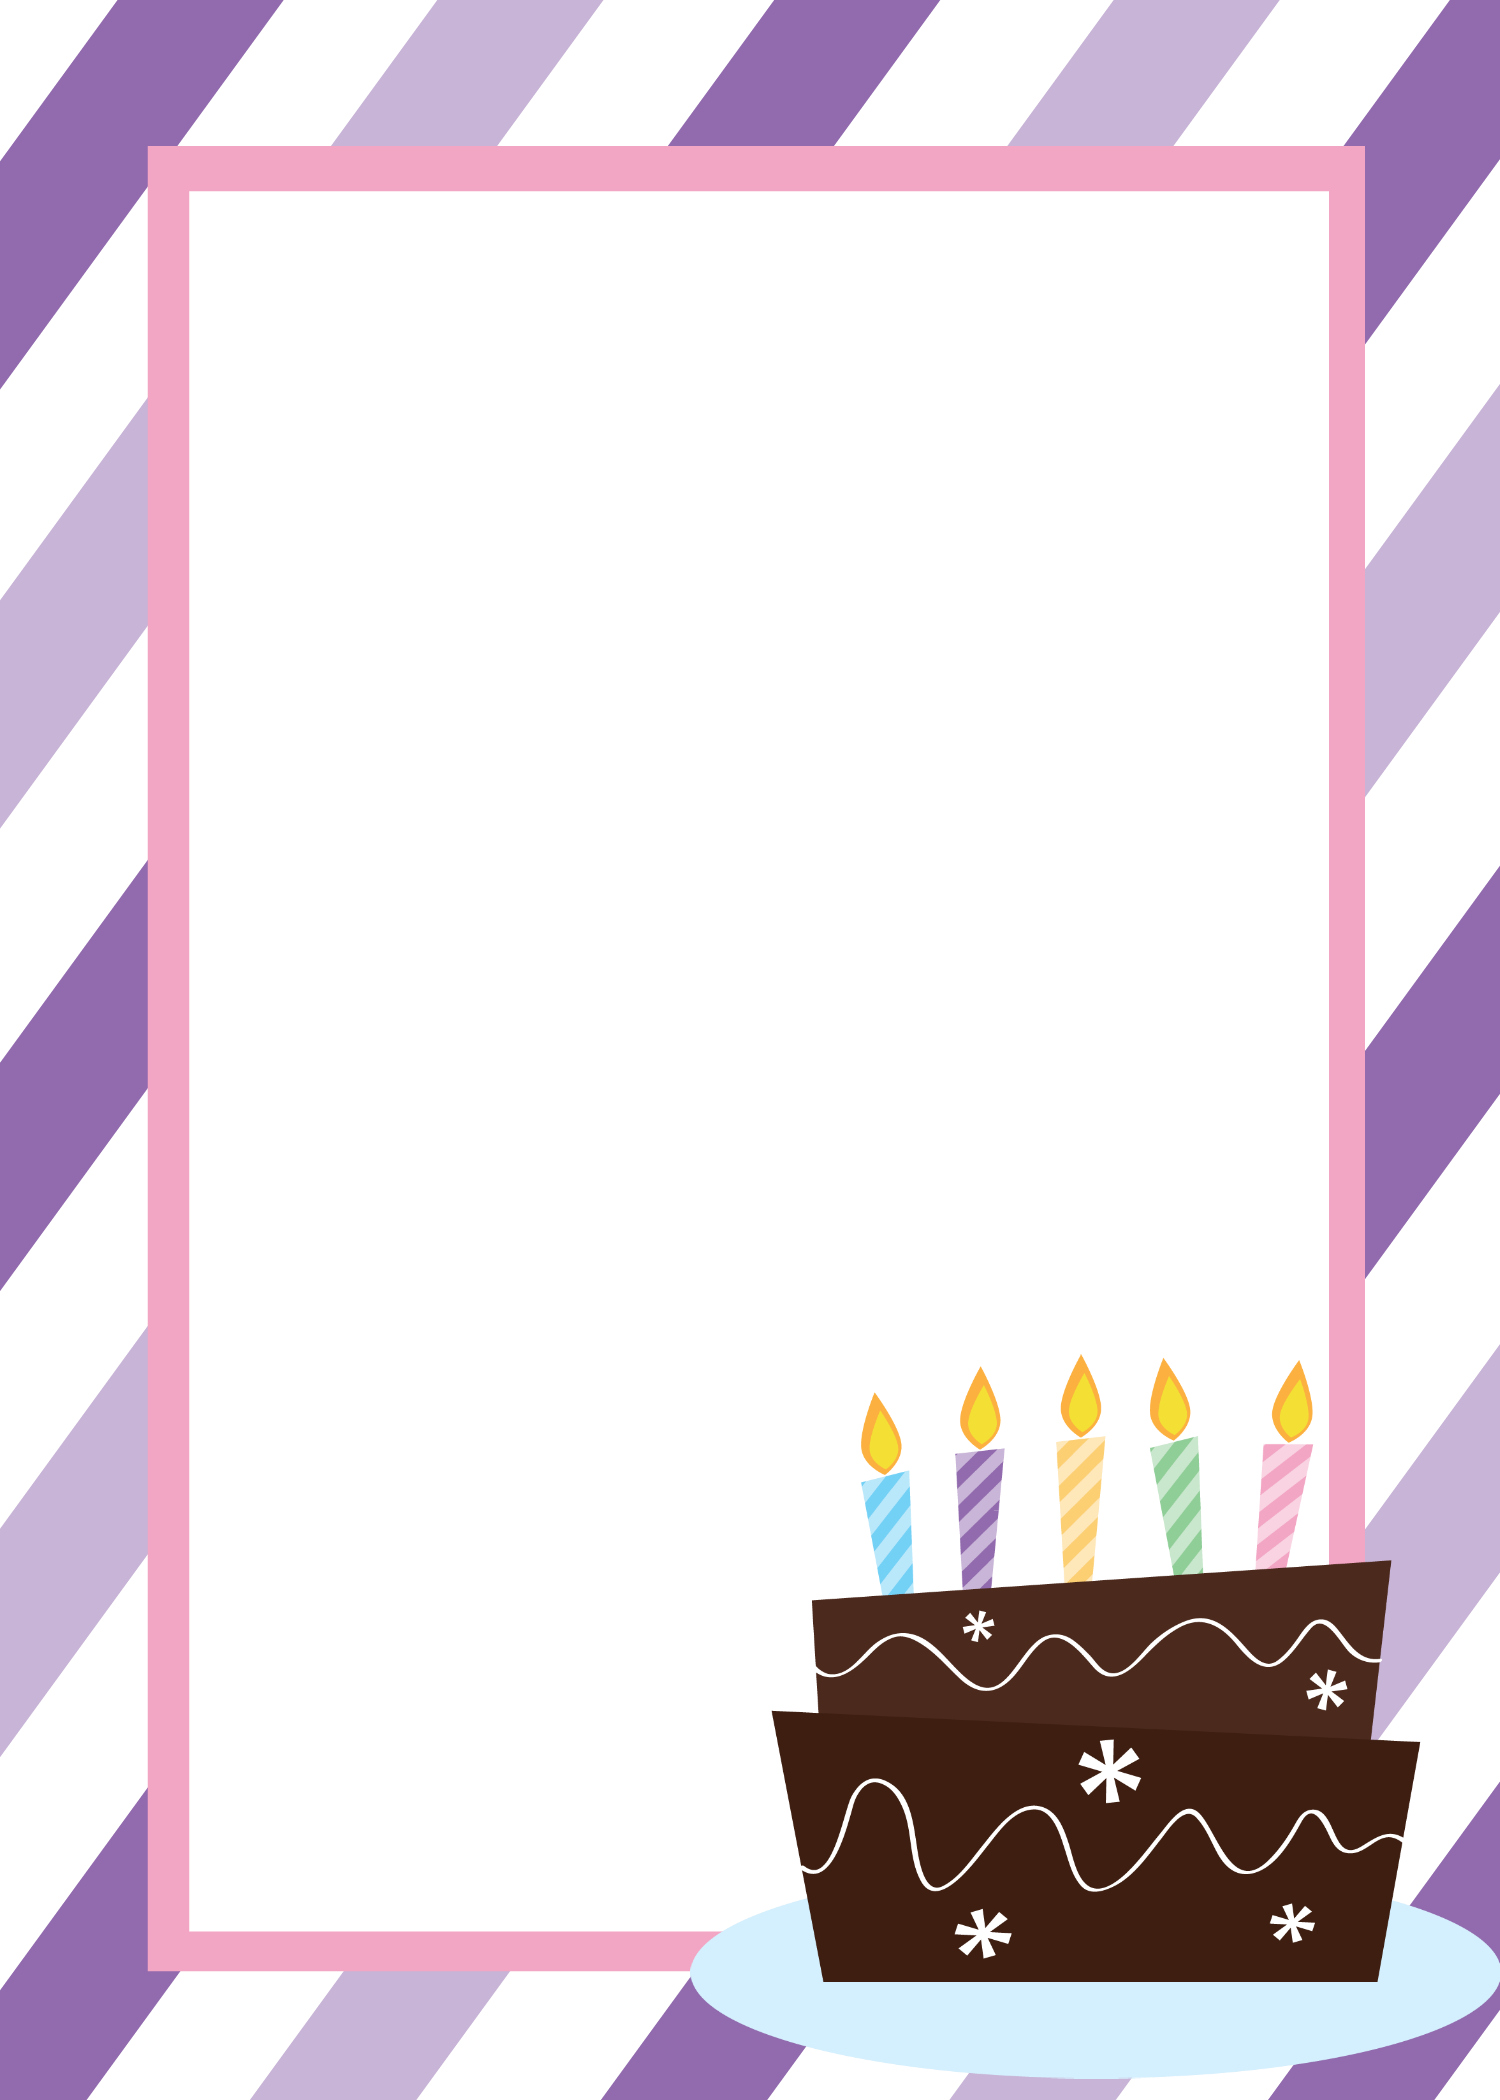 birthday invitation card design blank ; Blank-Birthday-Invitation-Templates-and-get-inspired-to-create-your-own-birthday-Invitation-design-with-this-ideas-1